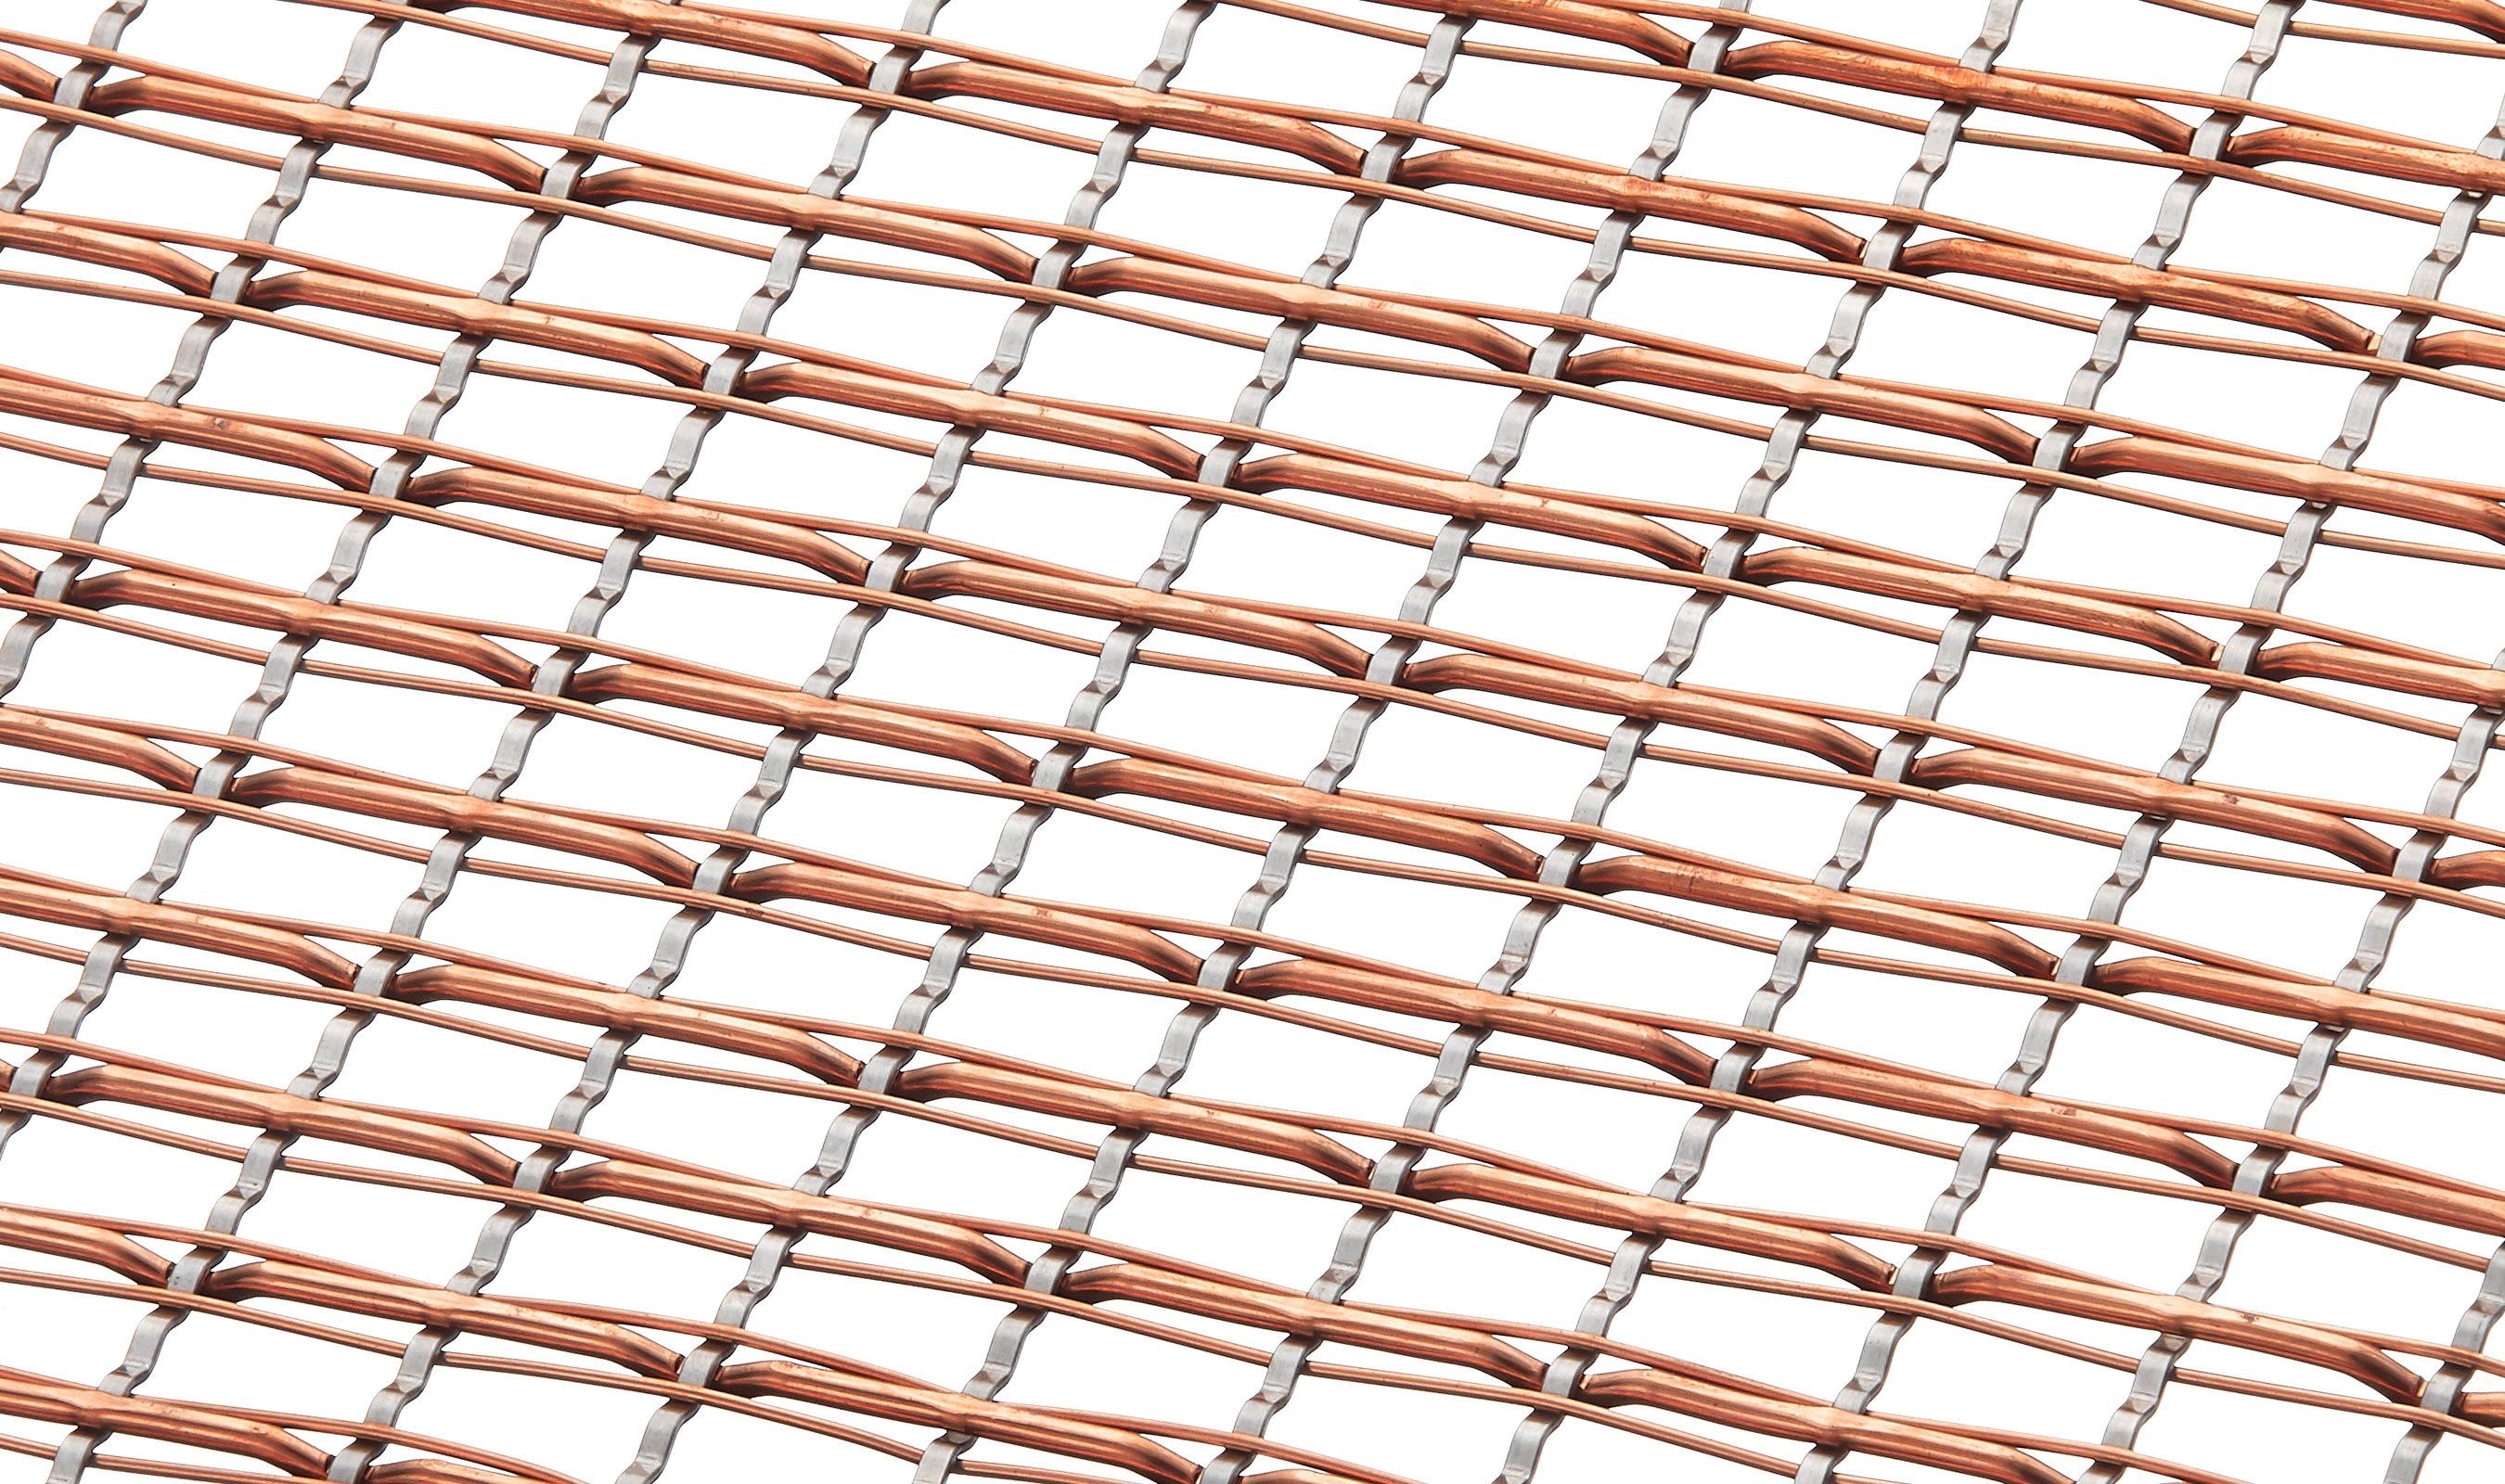 SJD-7 Stainless Steel and Copper Mixed alloy mesh weave